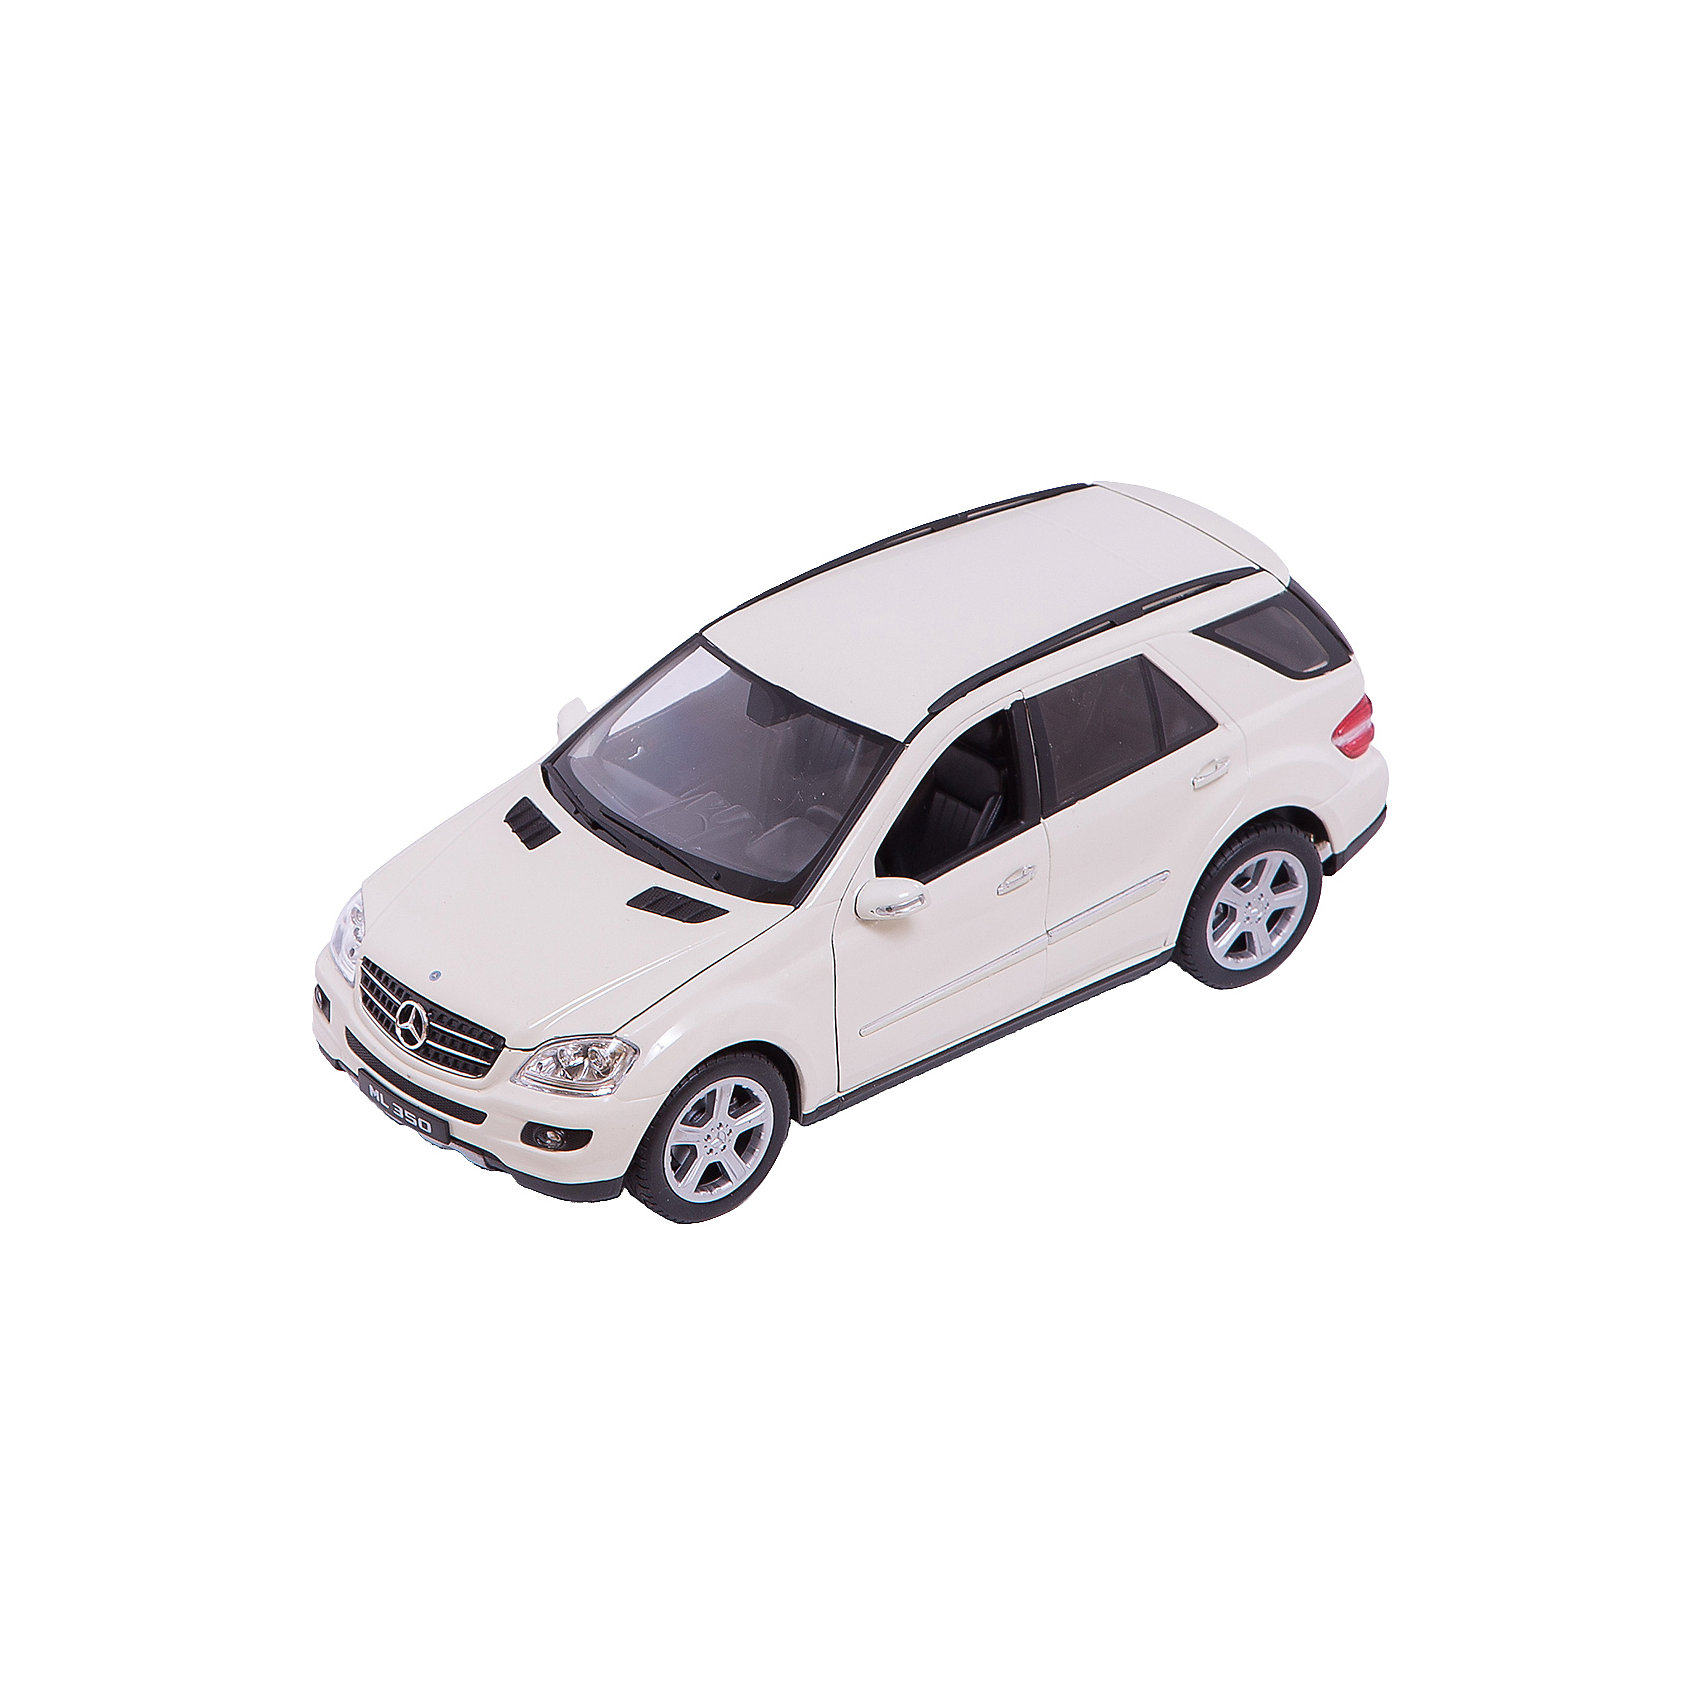 Welly Welly Модель машины 1:18 Mercedes-Benz ML350